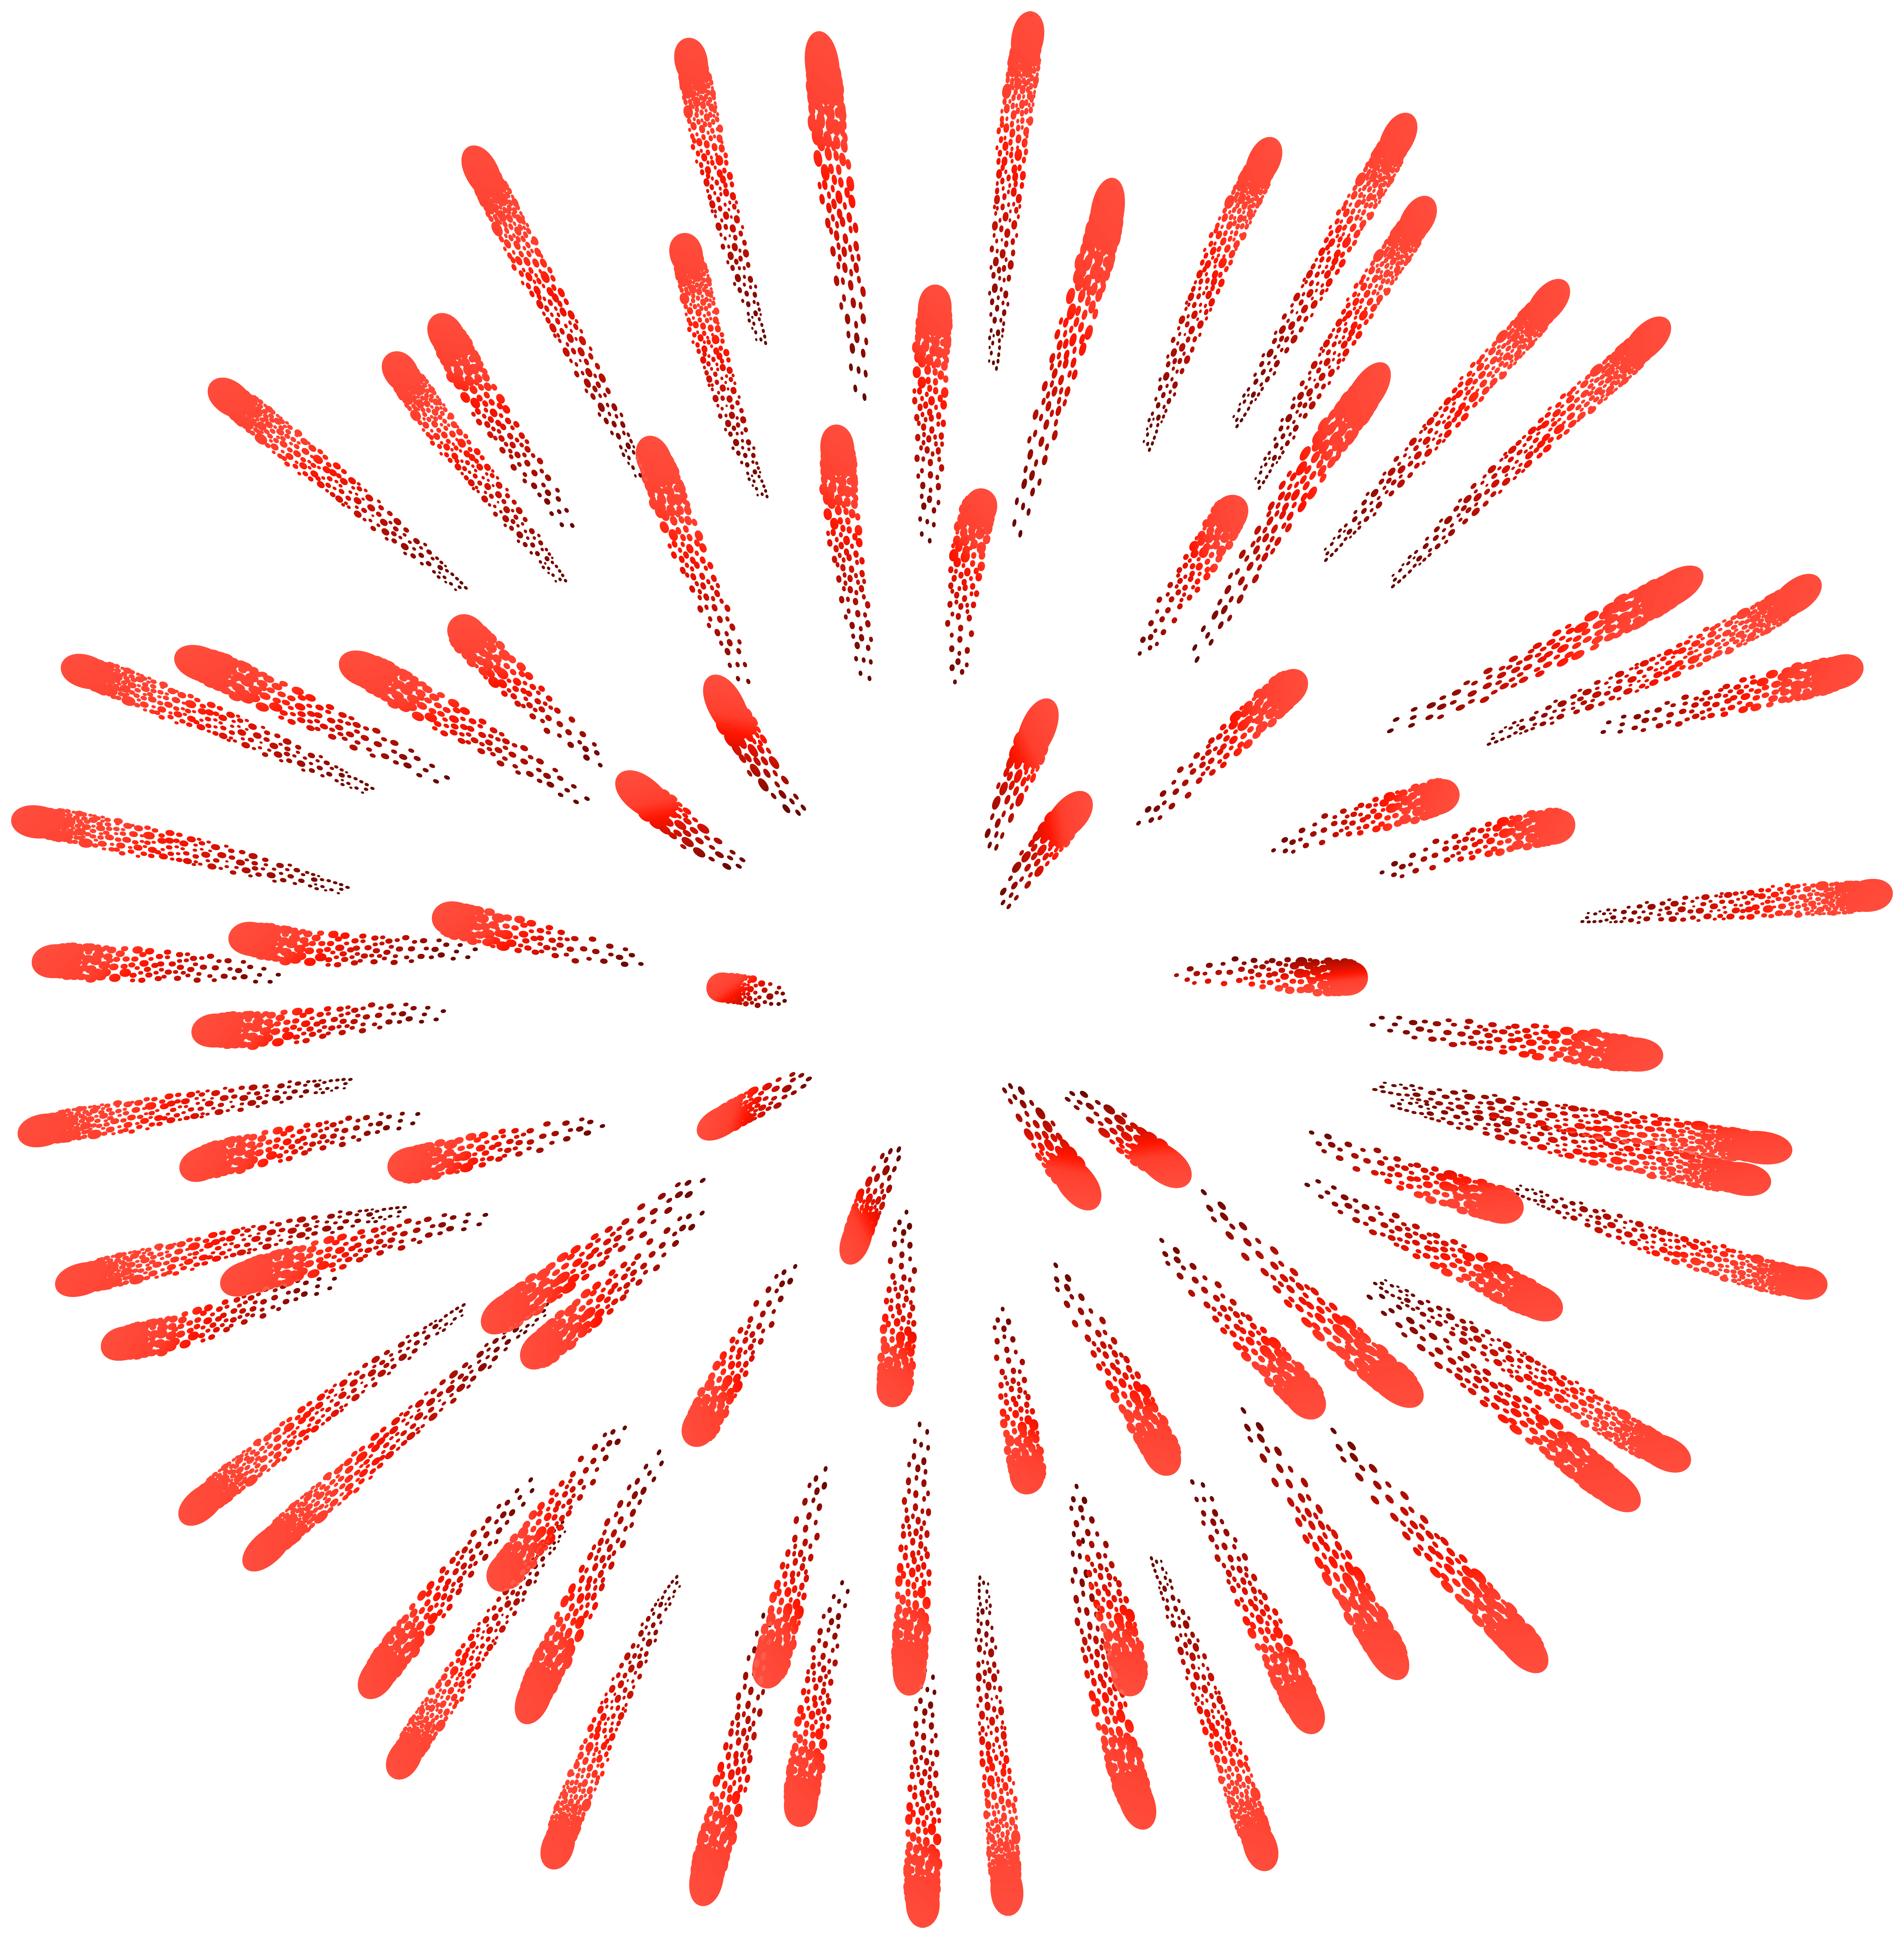 Firework clipart png. Red clip art image